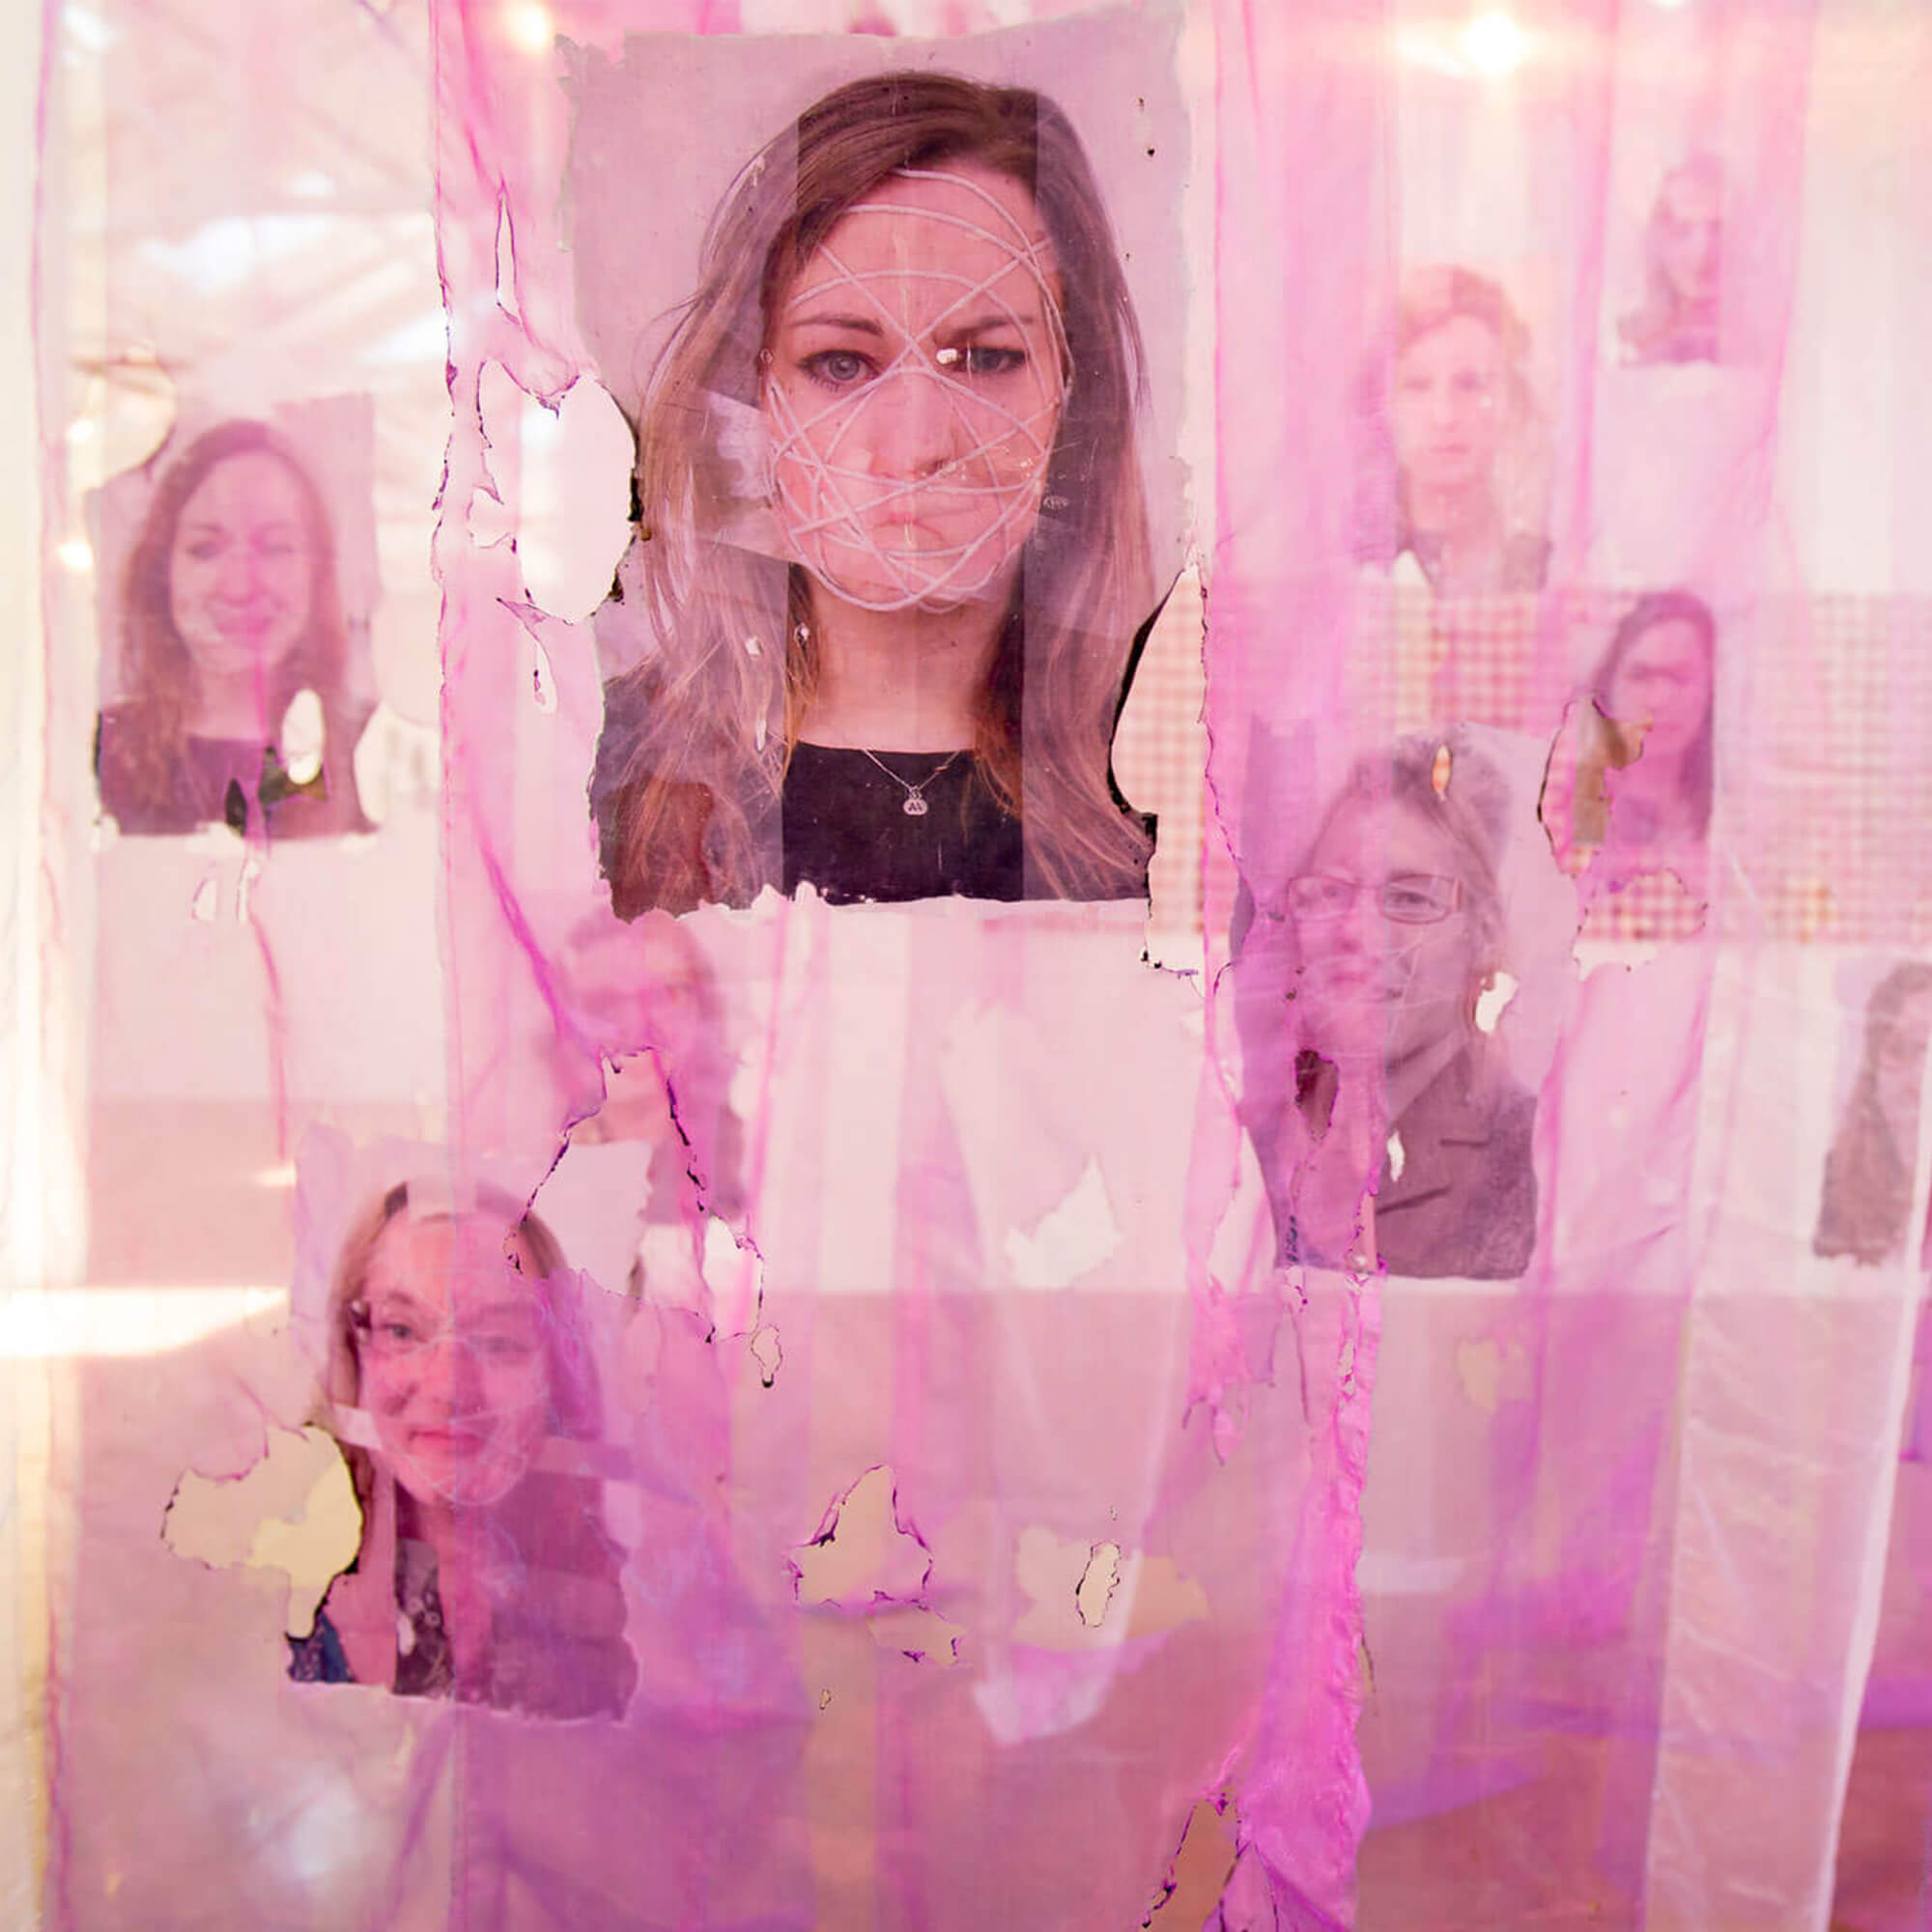 Multiple portrait photos are stuck to a purple fabric that's ripped and hung from a ceiling